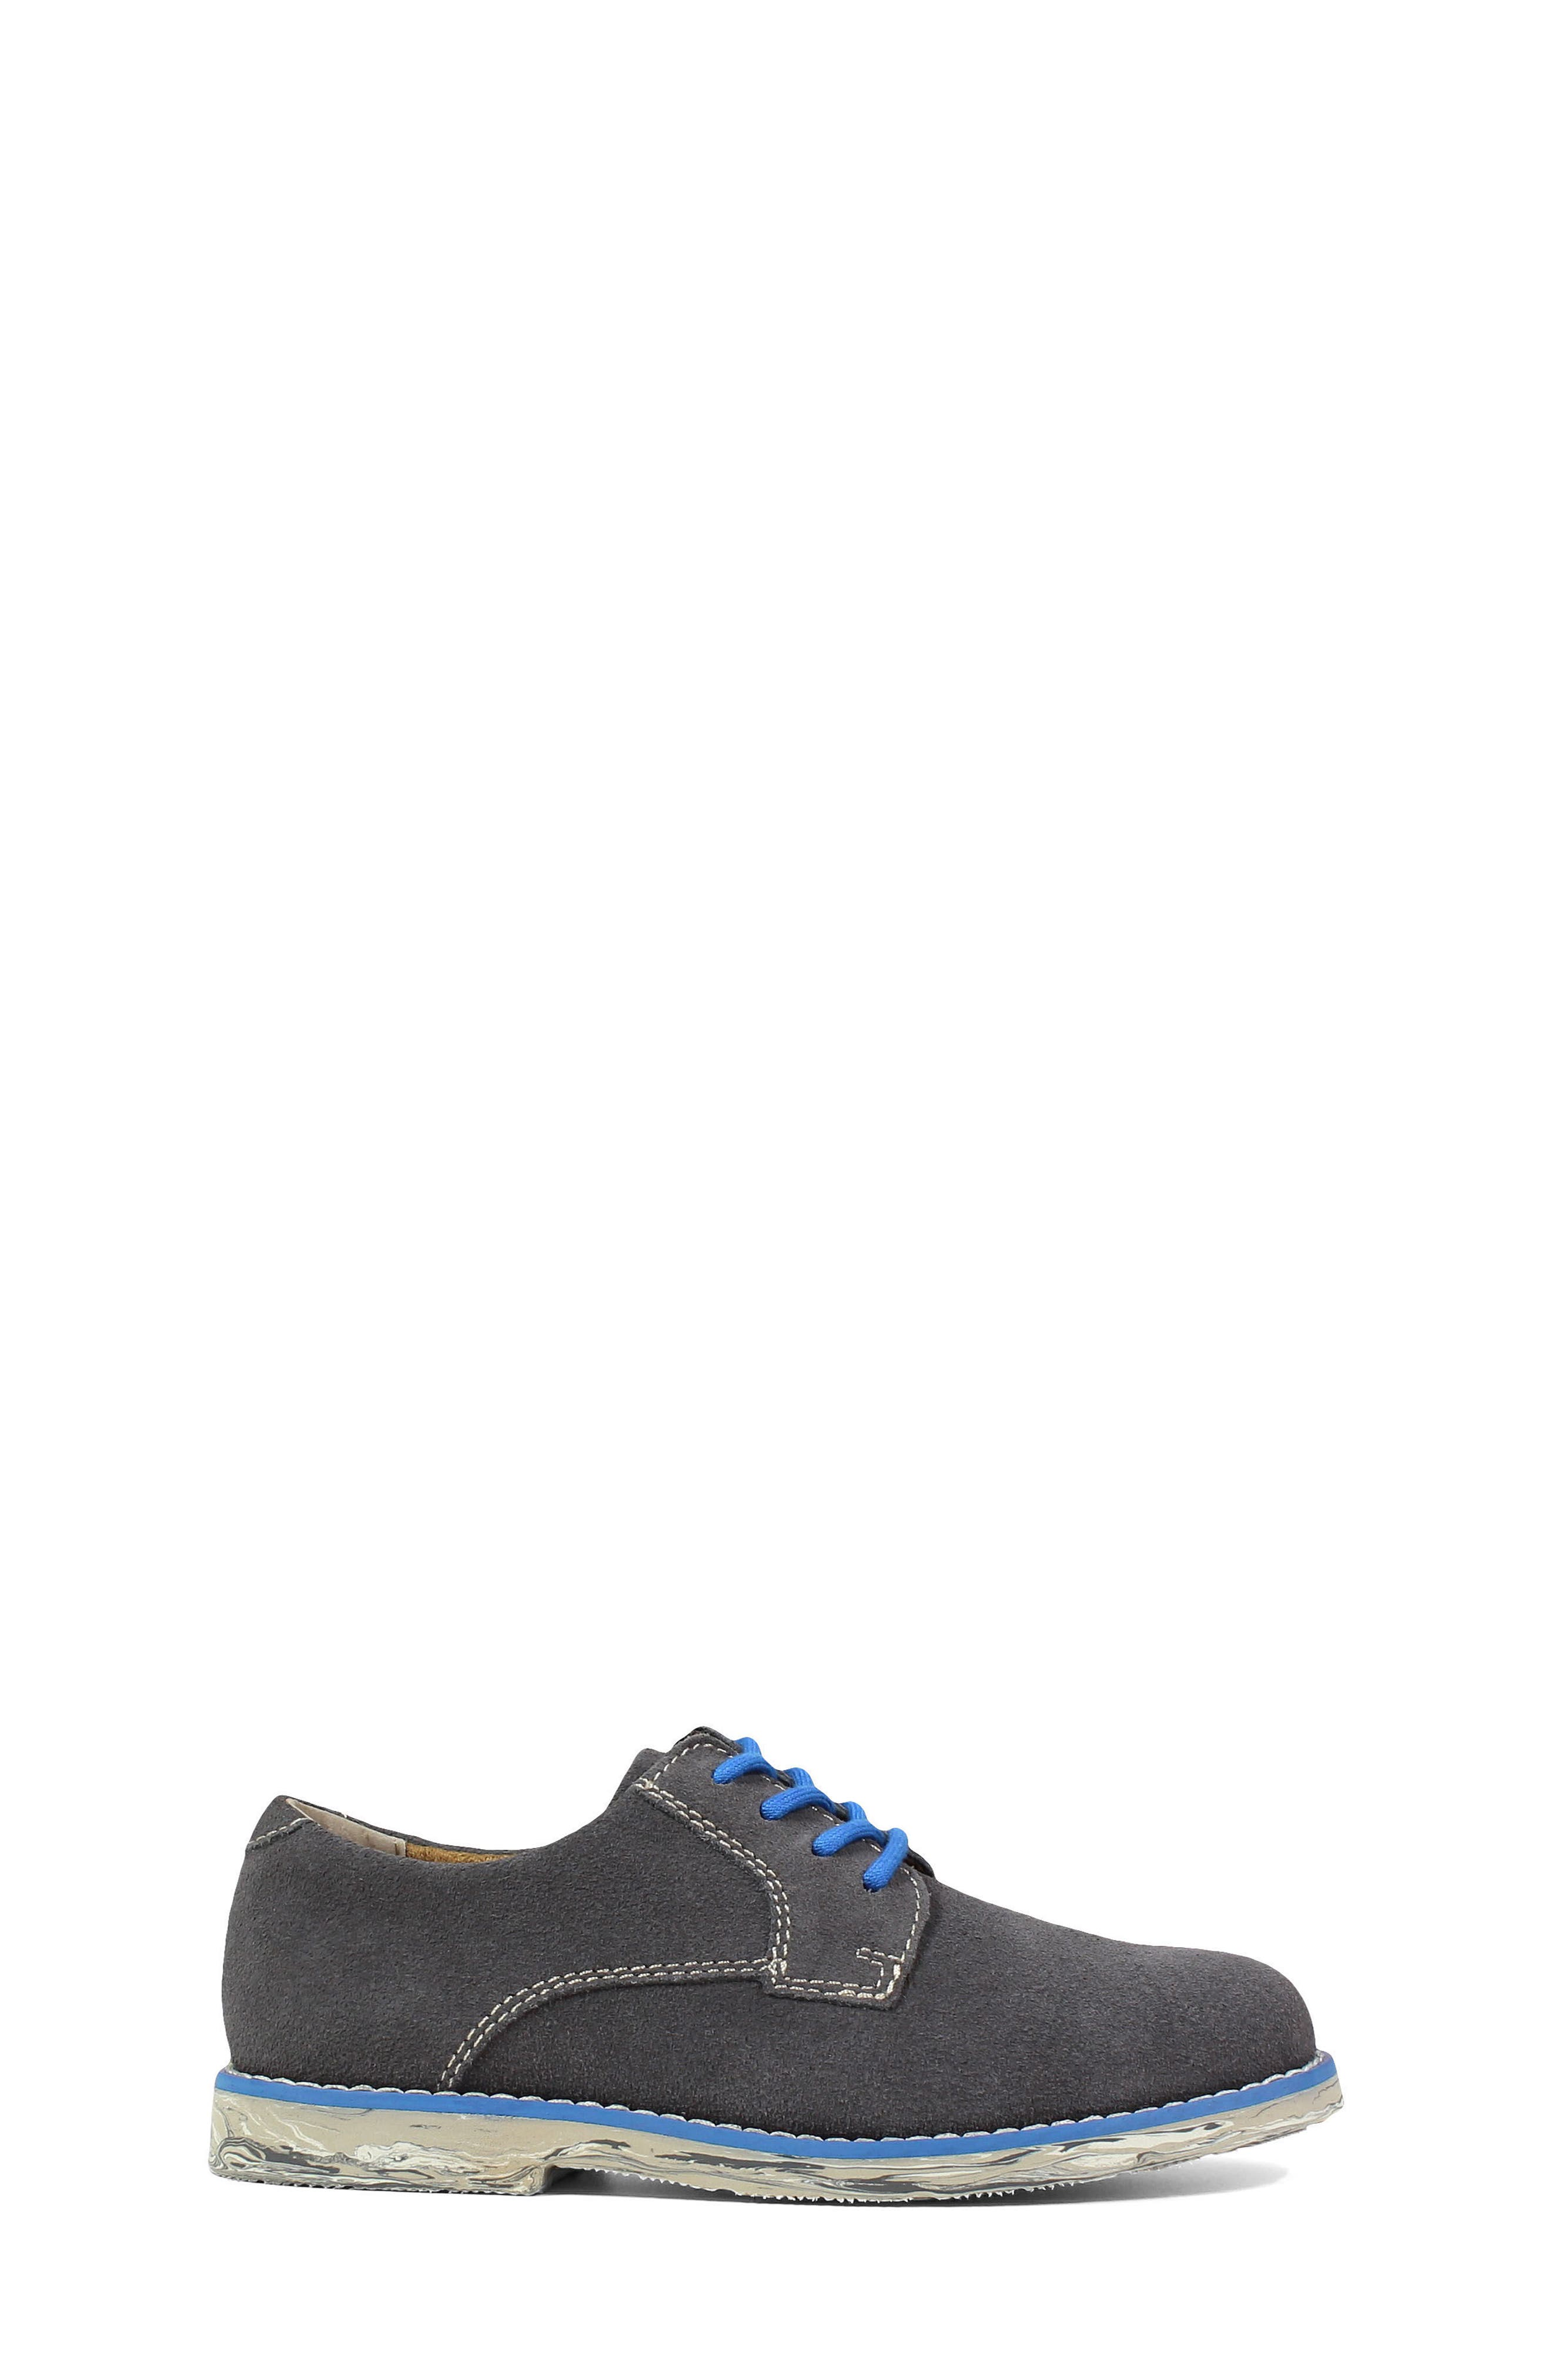 FLORSHEIM,                             Kearny II Oxford,                             Alternate thumbnail 3, color,                             GRAY SUEDE